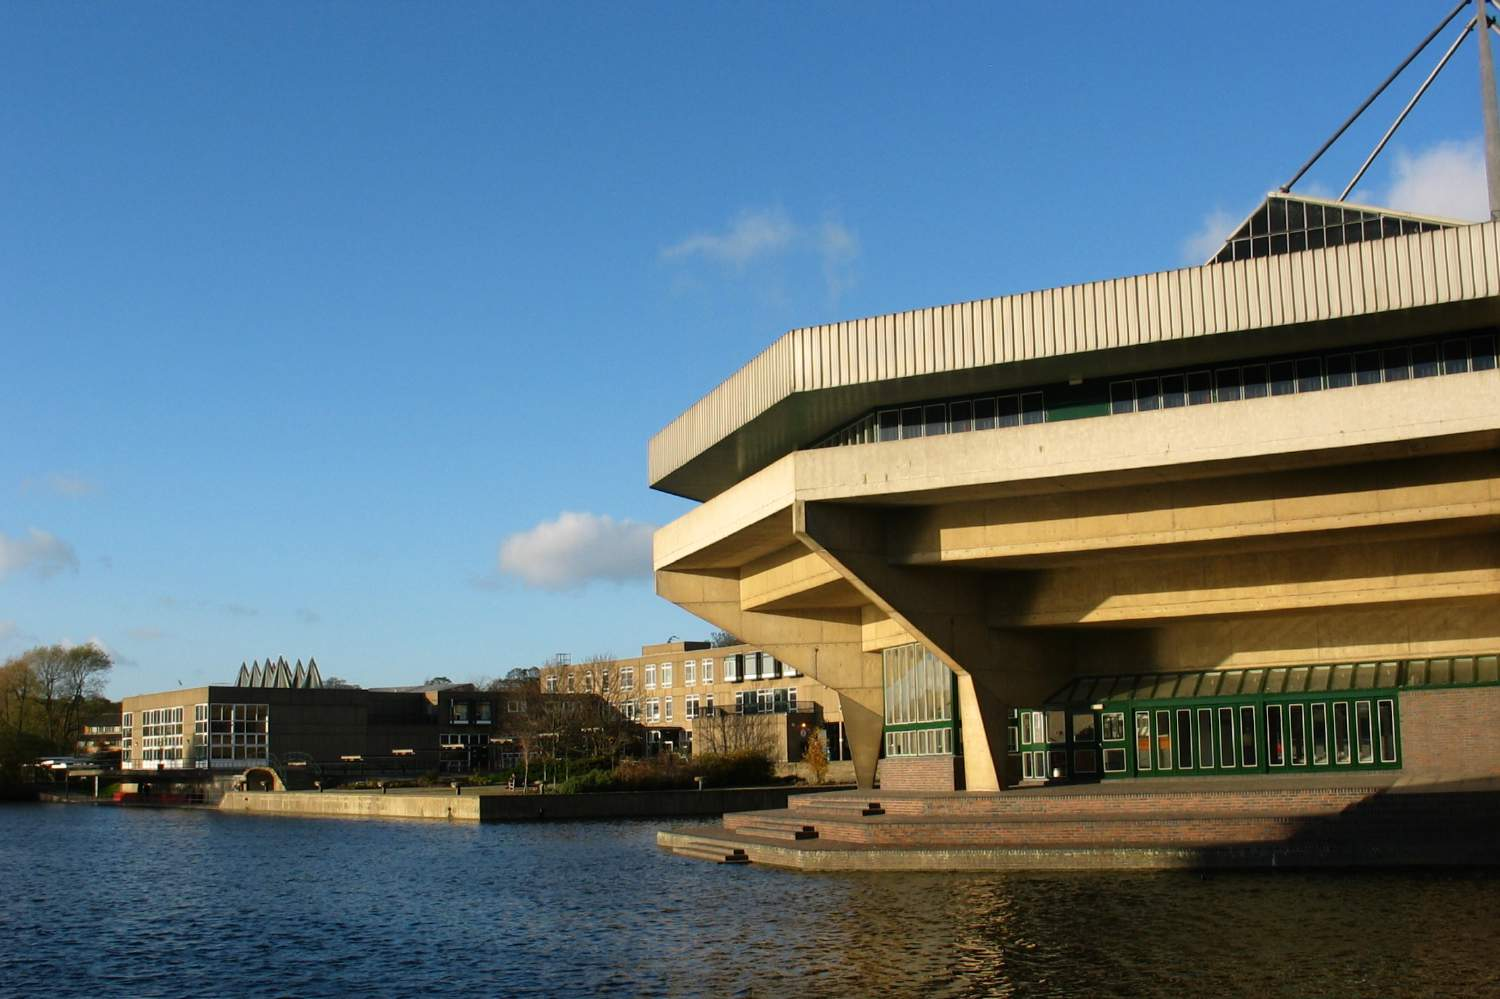 Clash of Comments: Should the University of York receive the University of the Year Award?